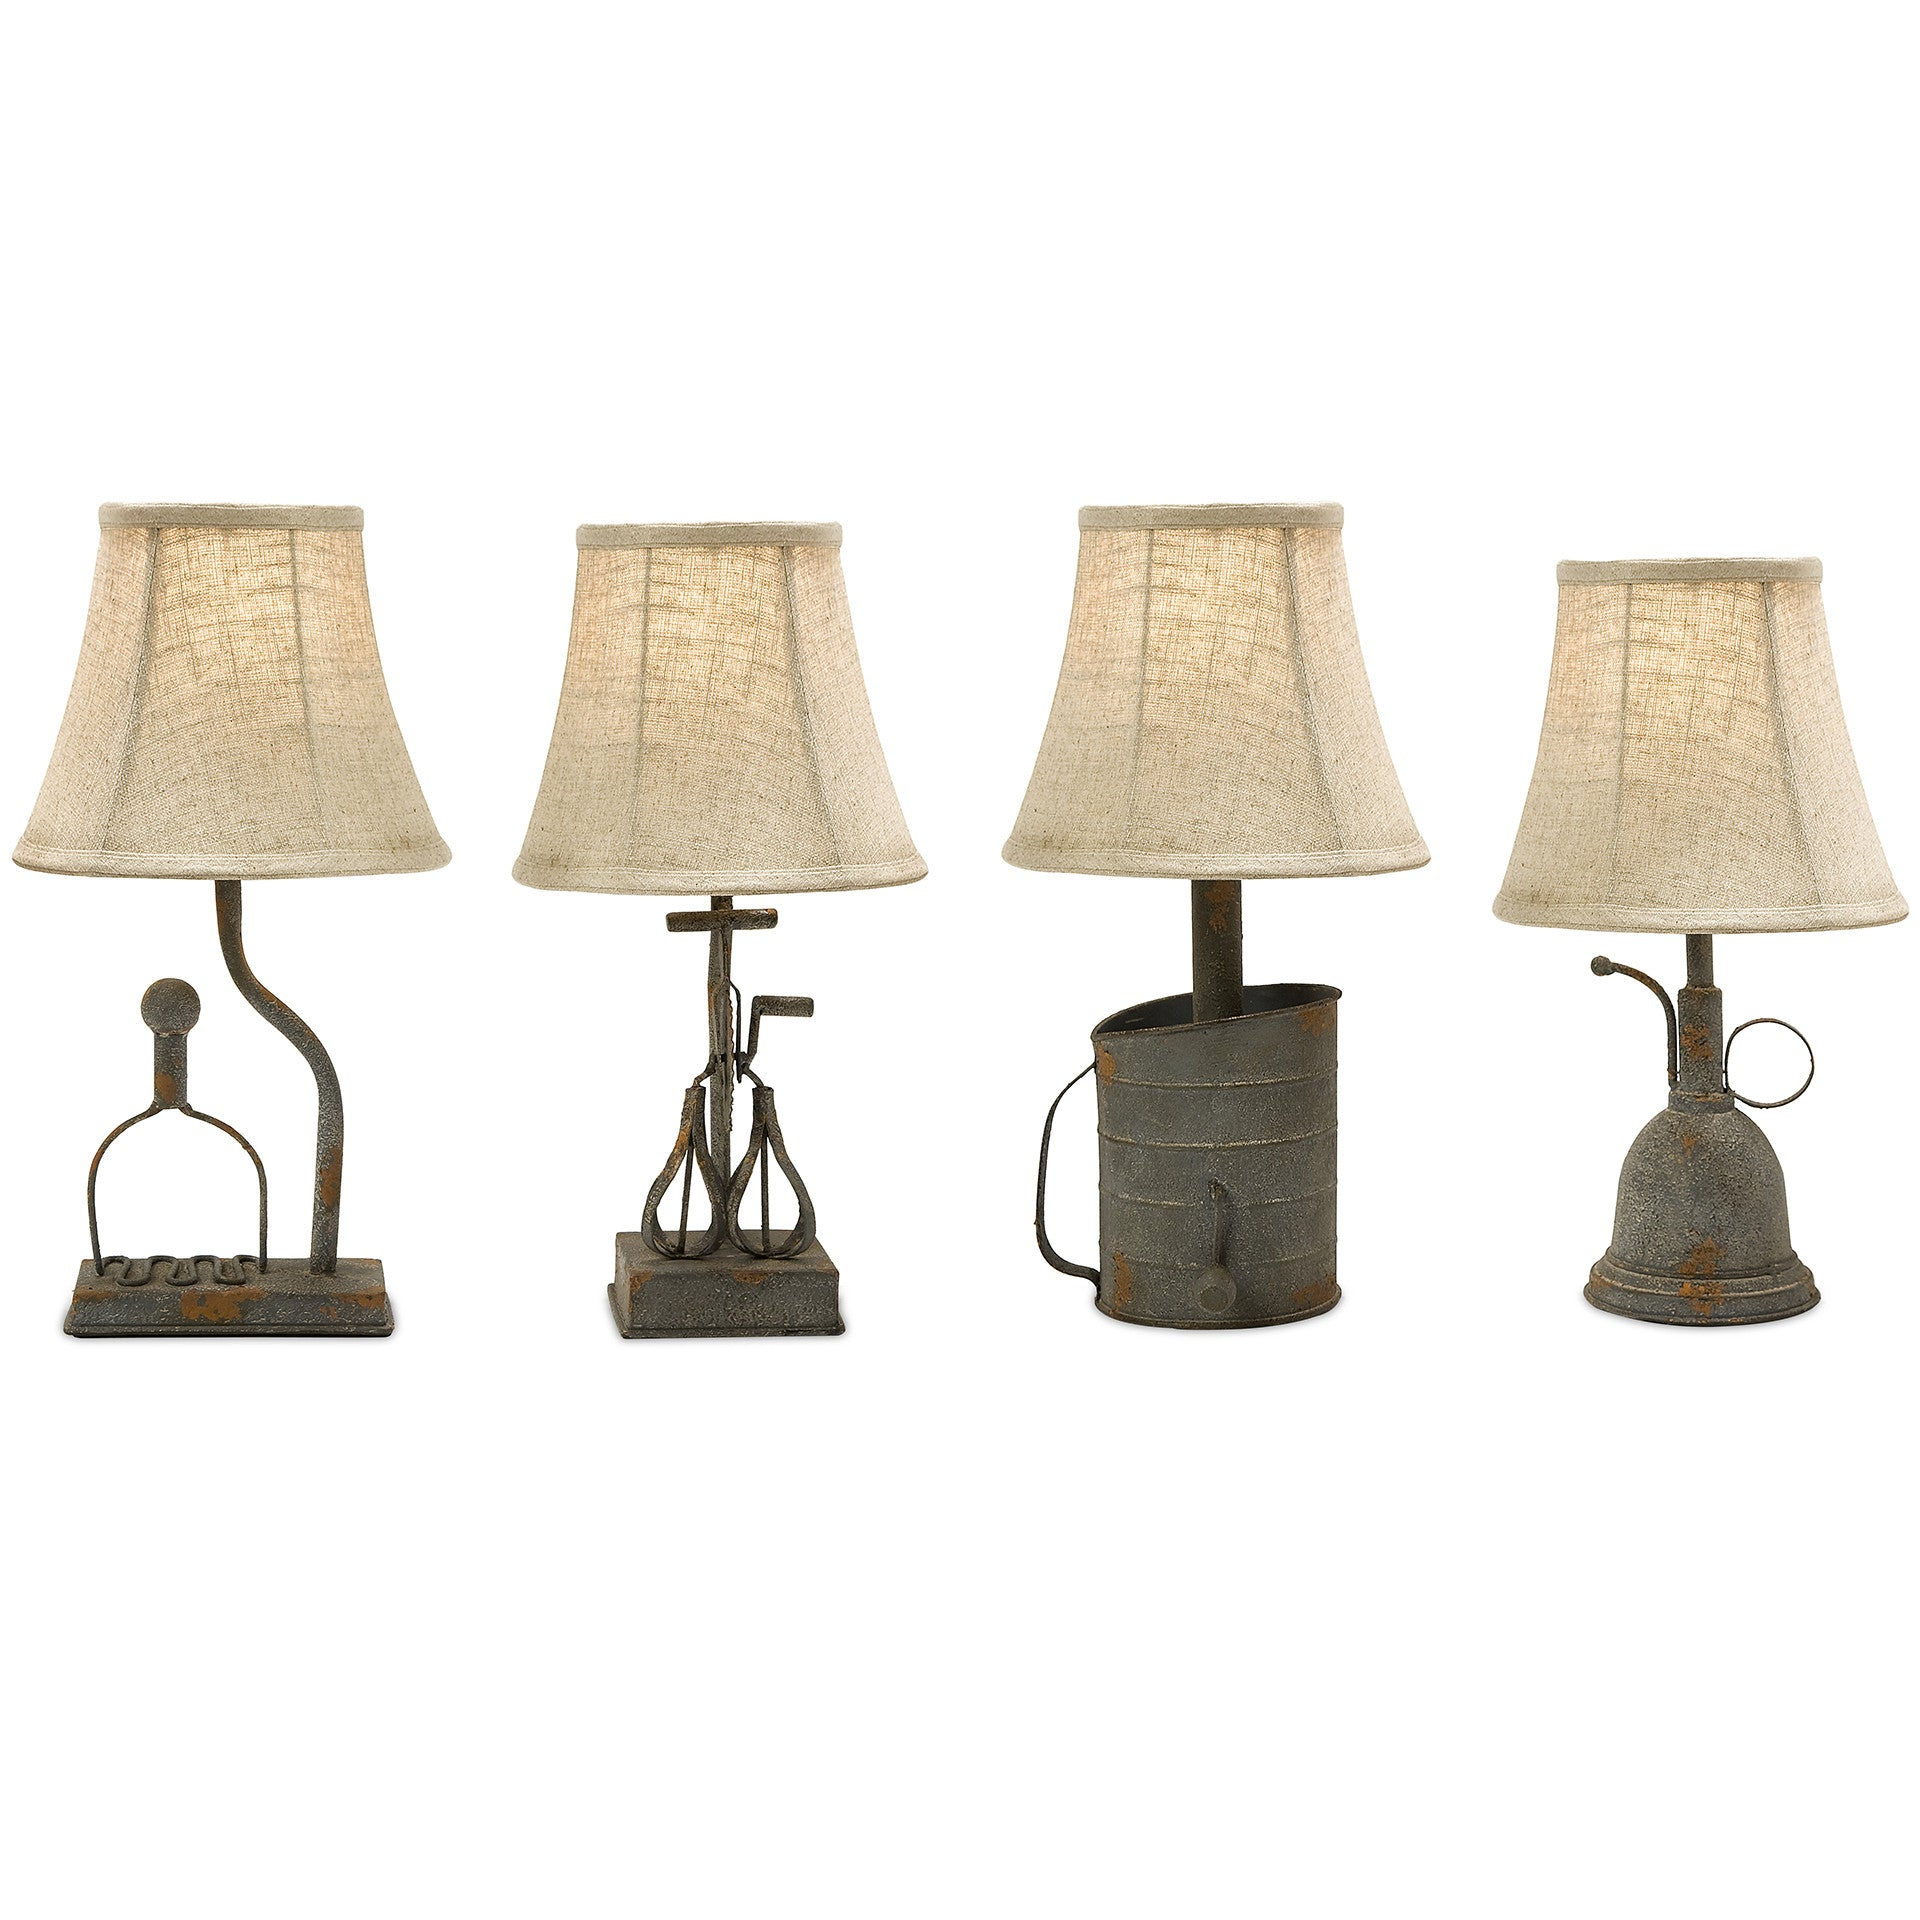 Modern Table Lamps Page 2 - Woodwaves